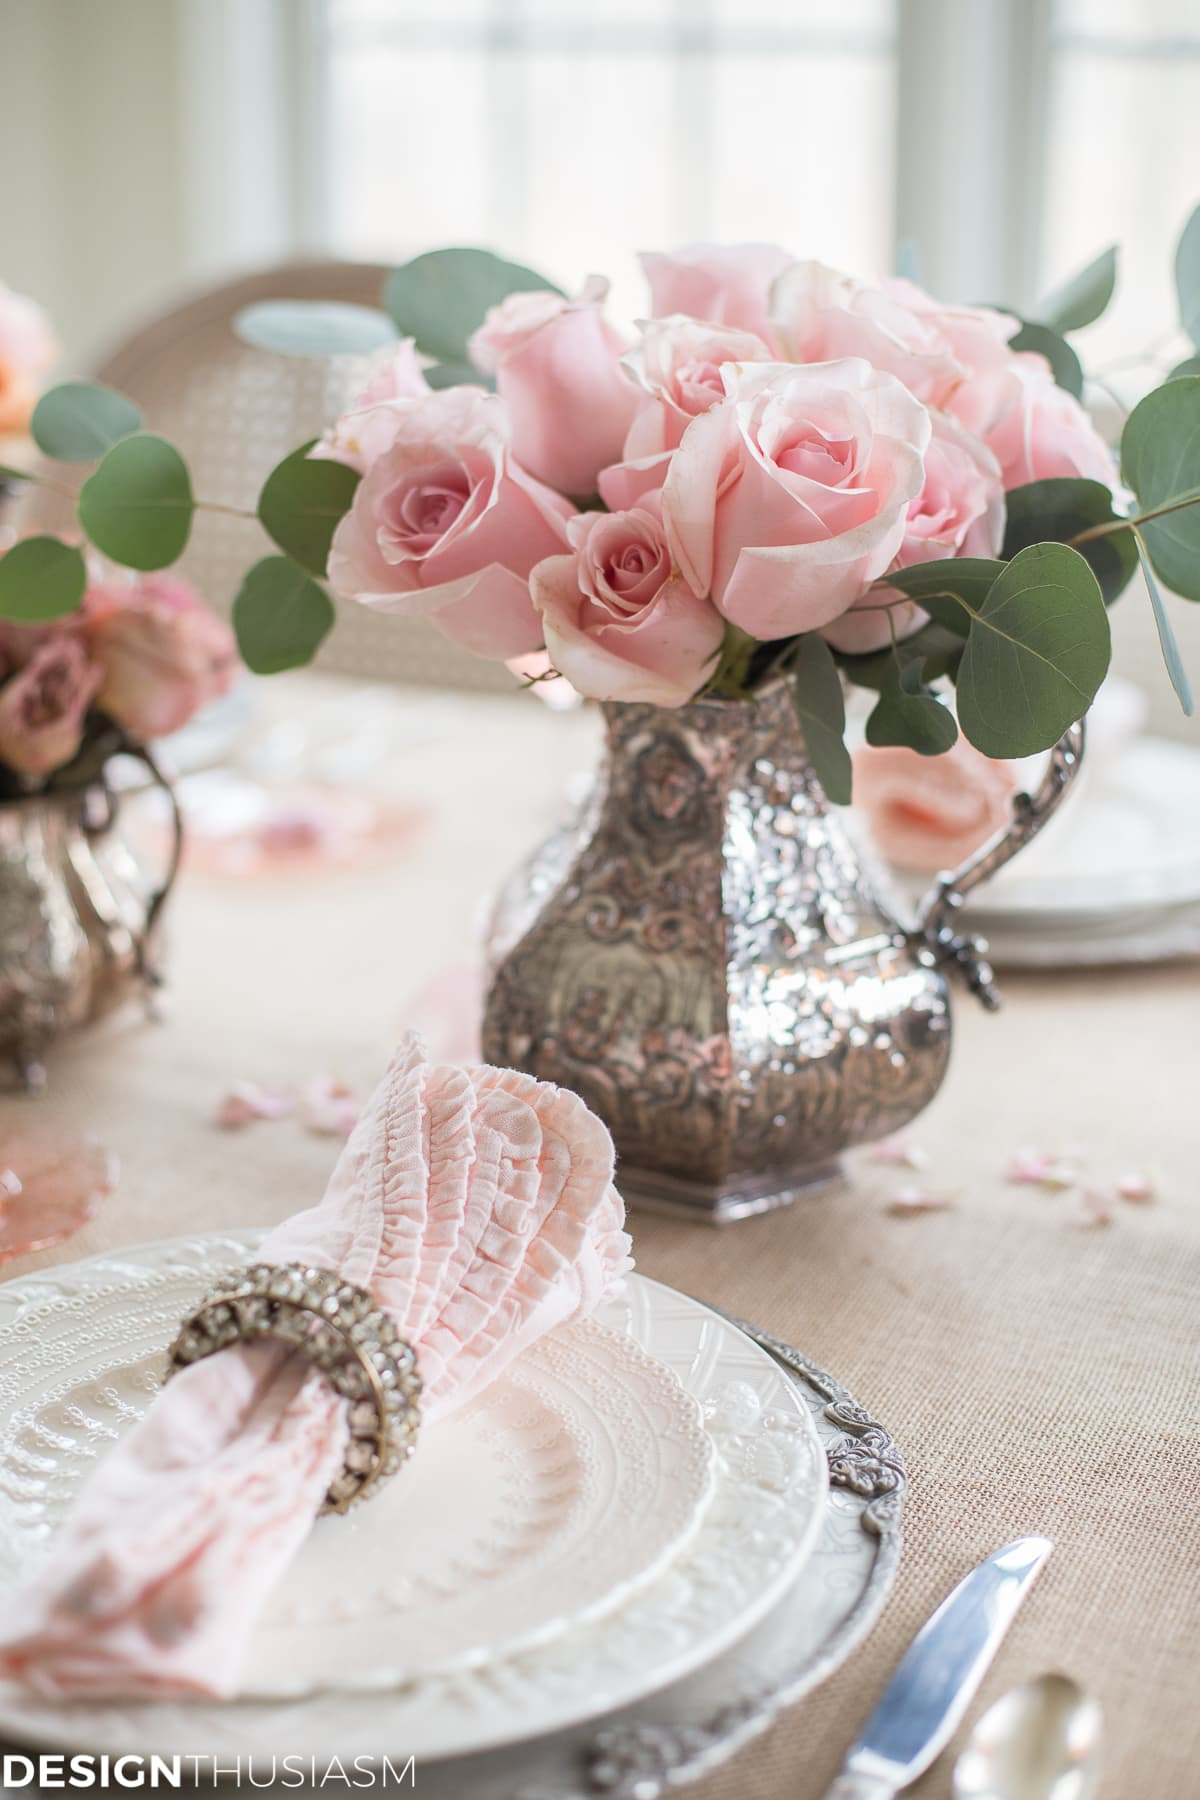 Rustic Romance Valentine's Table